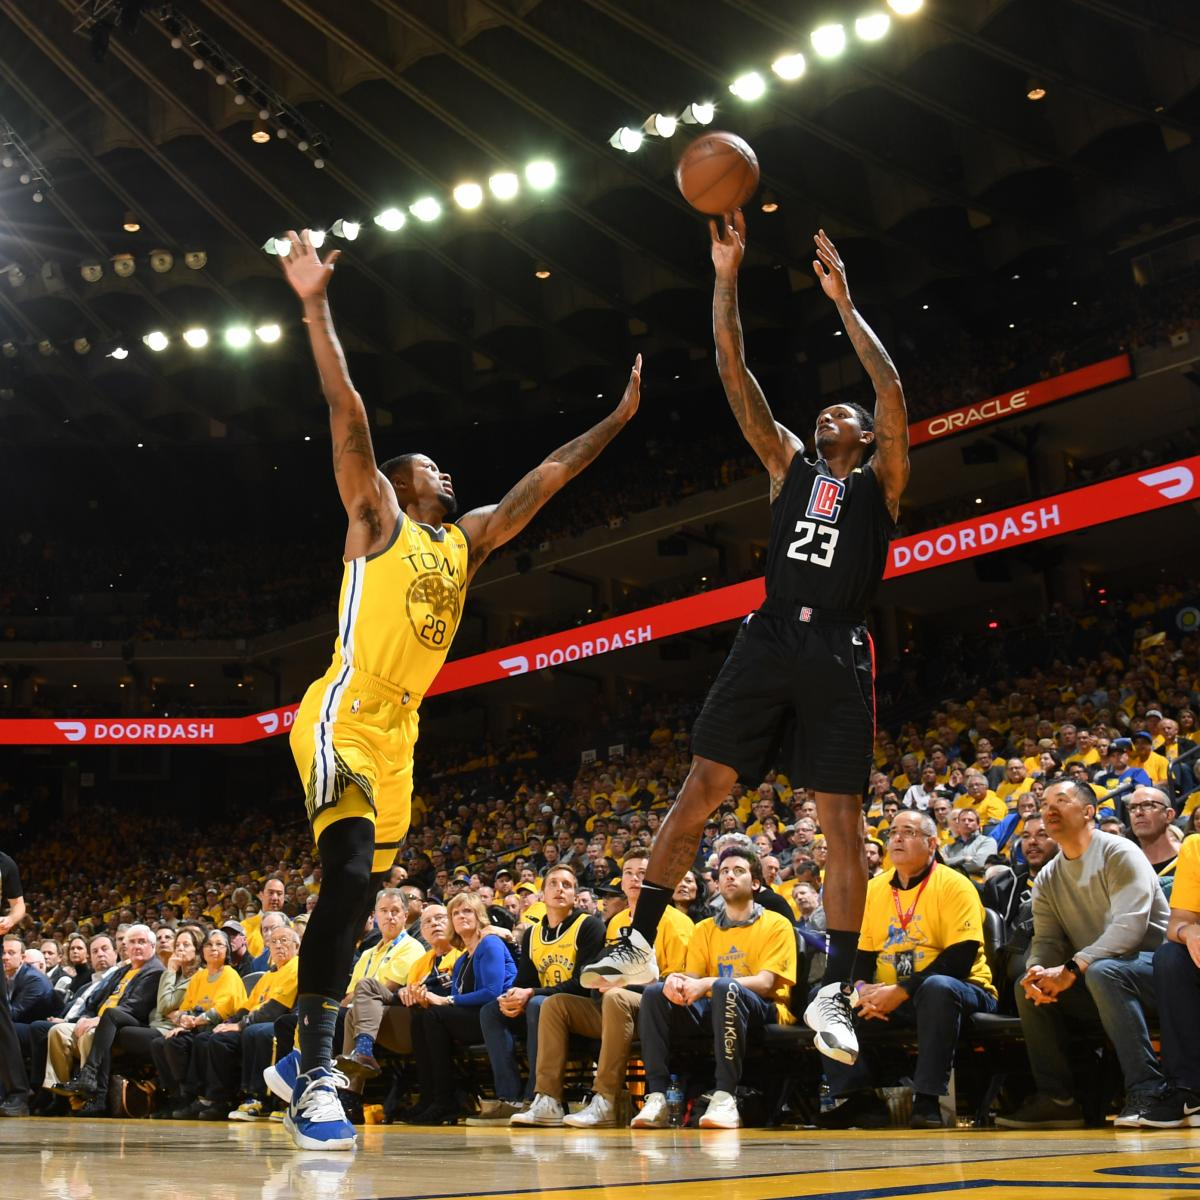 The Los Angeles Clippers pulled off what may be the greatest comeback in NBA history given the talent on the other side and evened their first-round series with the Golden State Warriors at one game apiece...